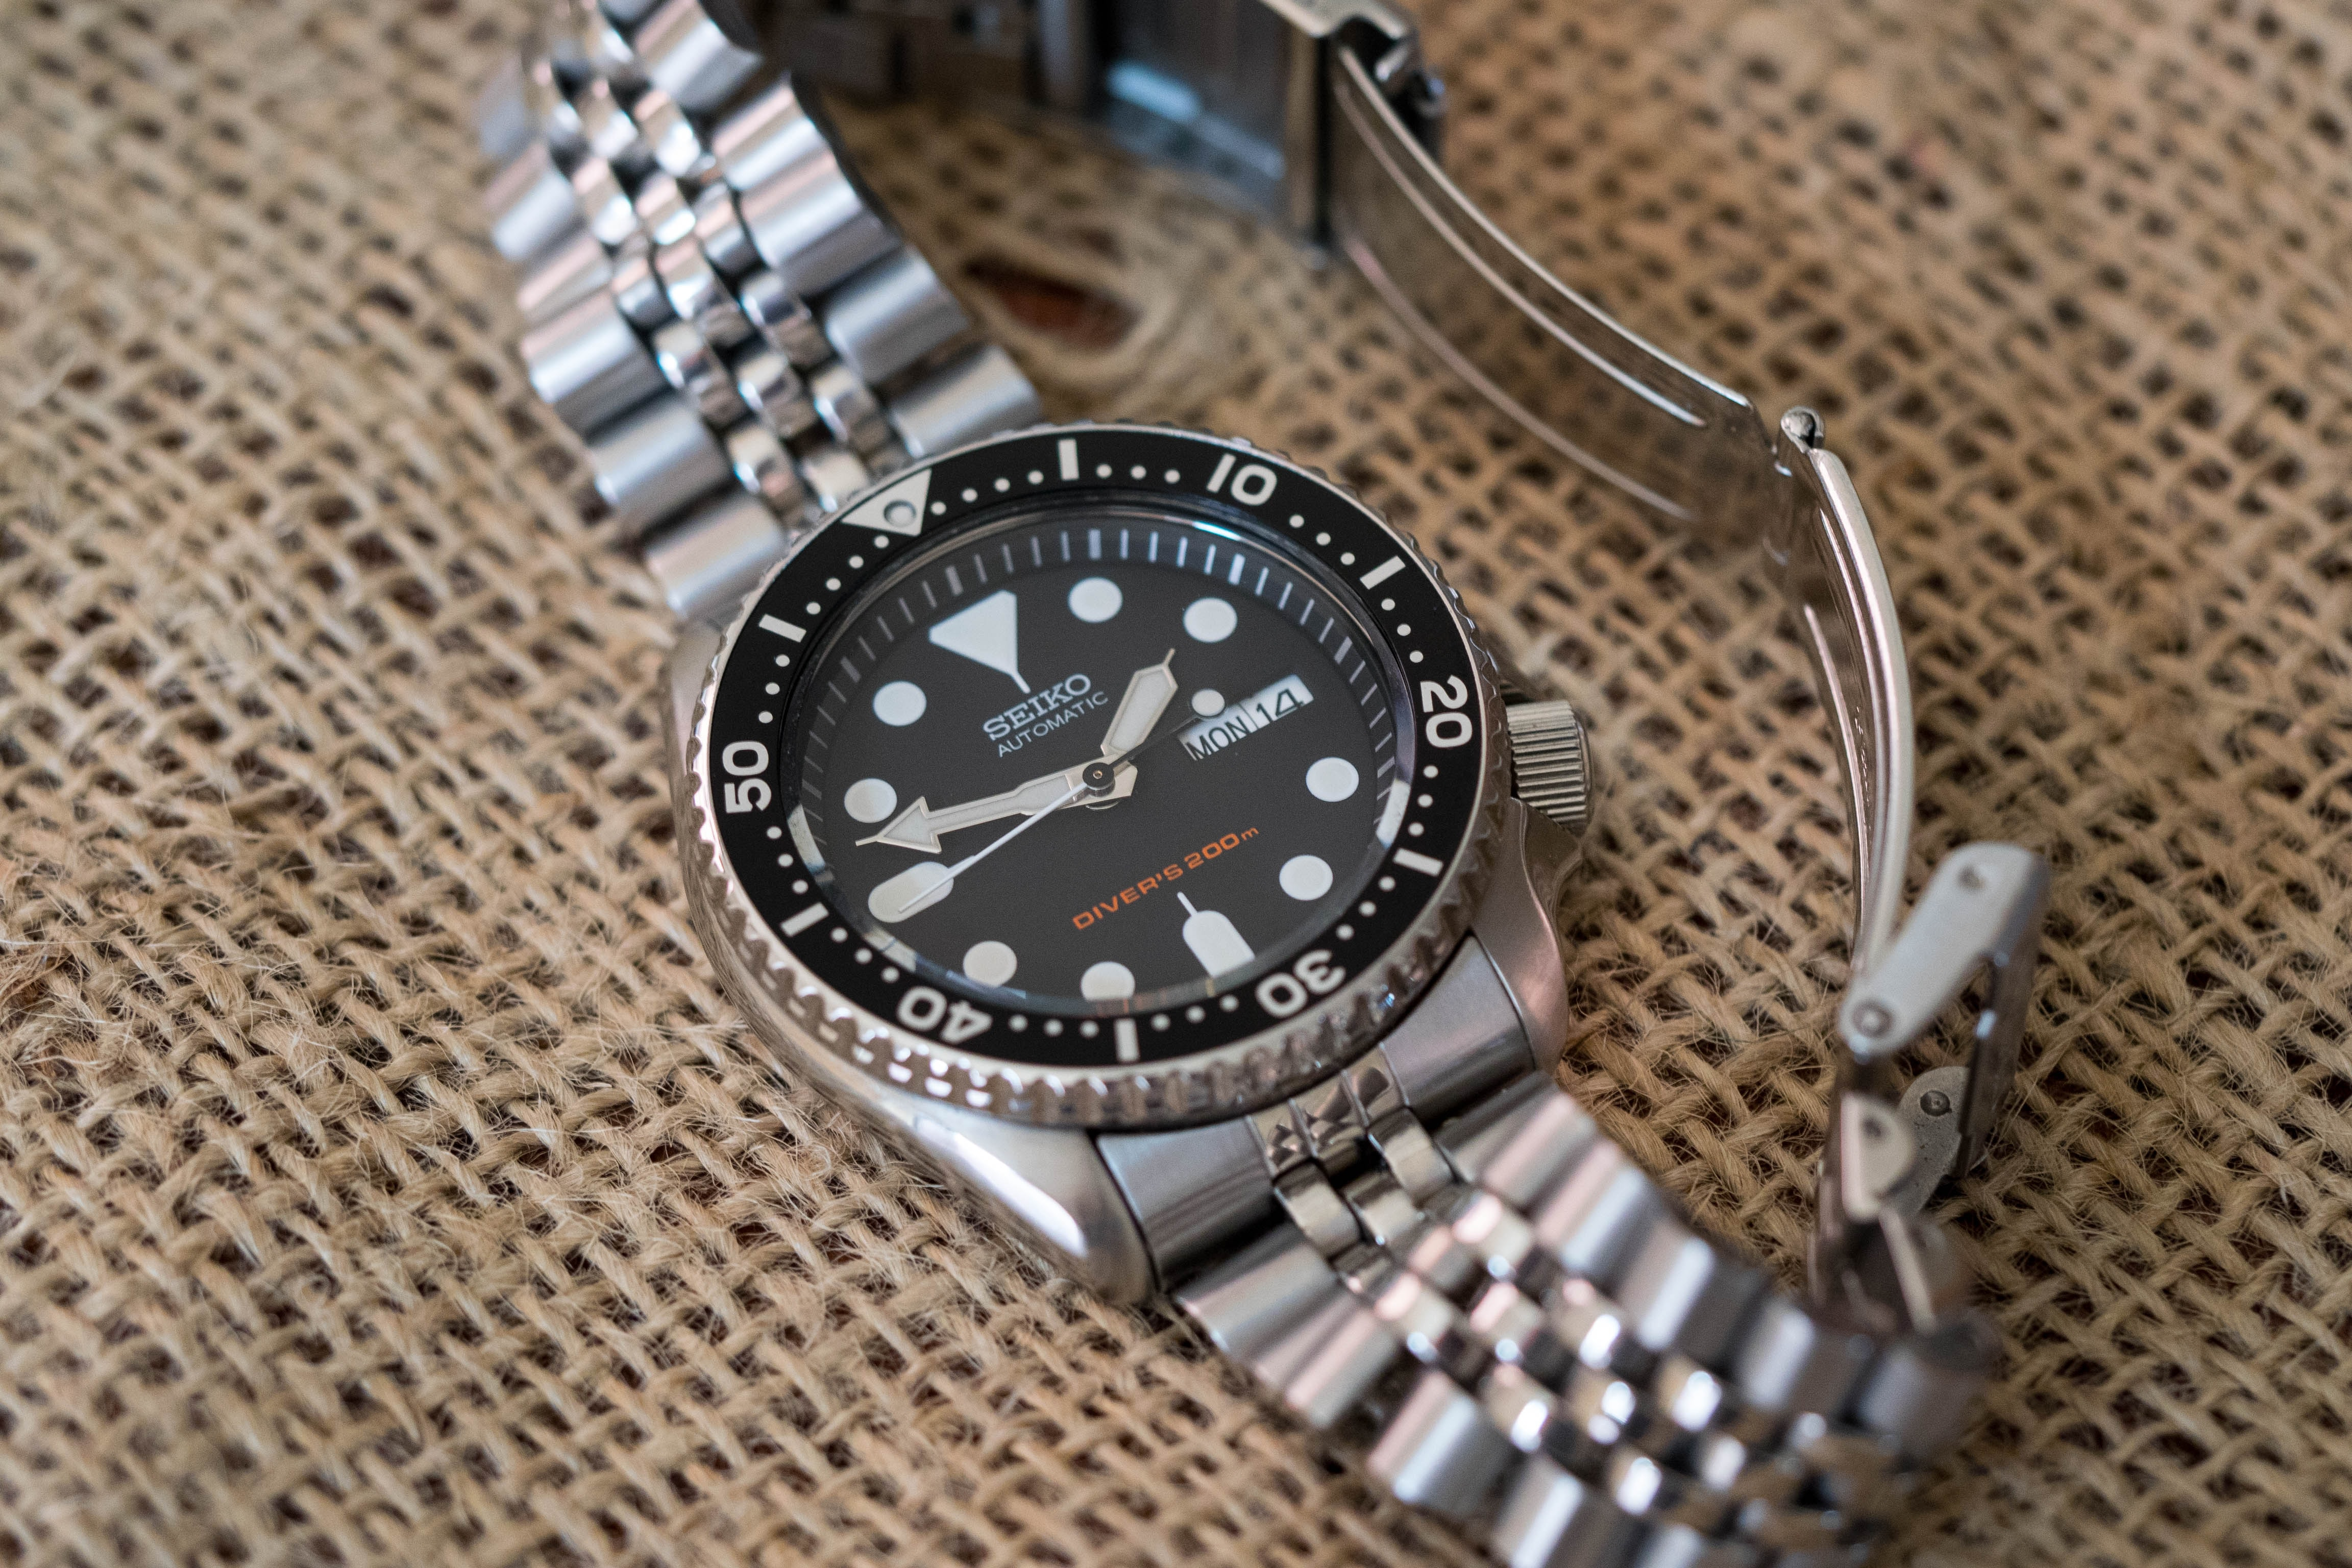 Features Of The Seiko SKX Models